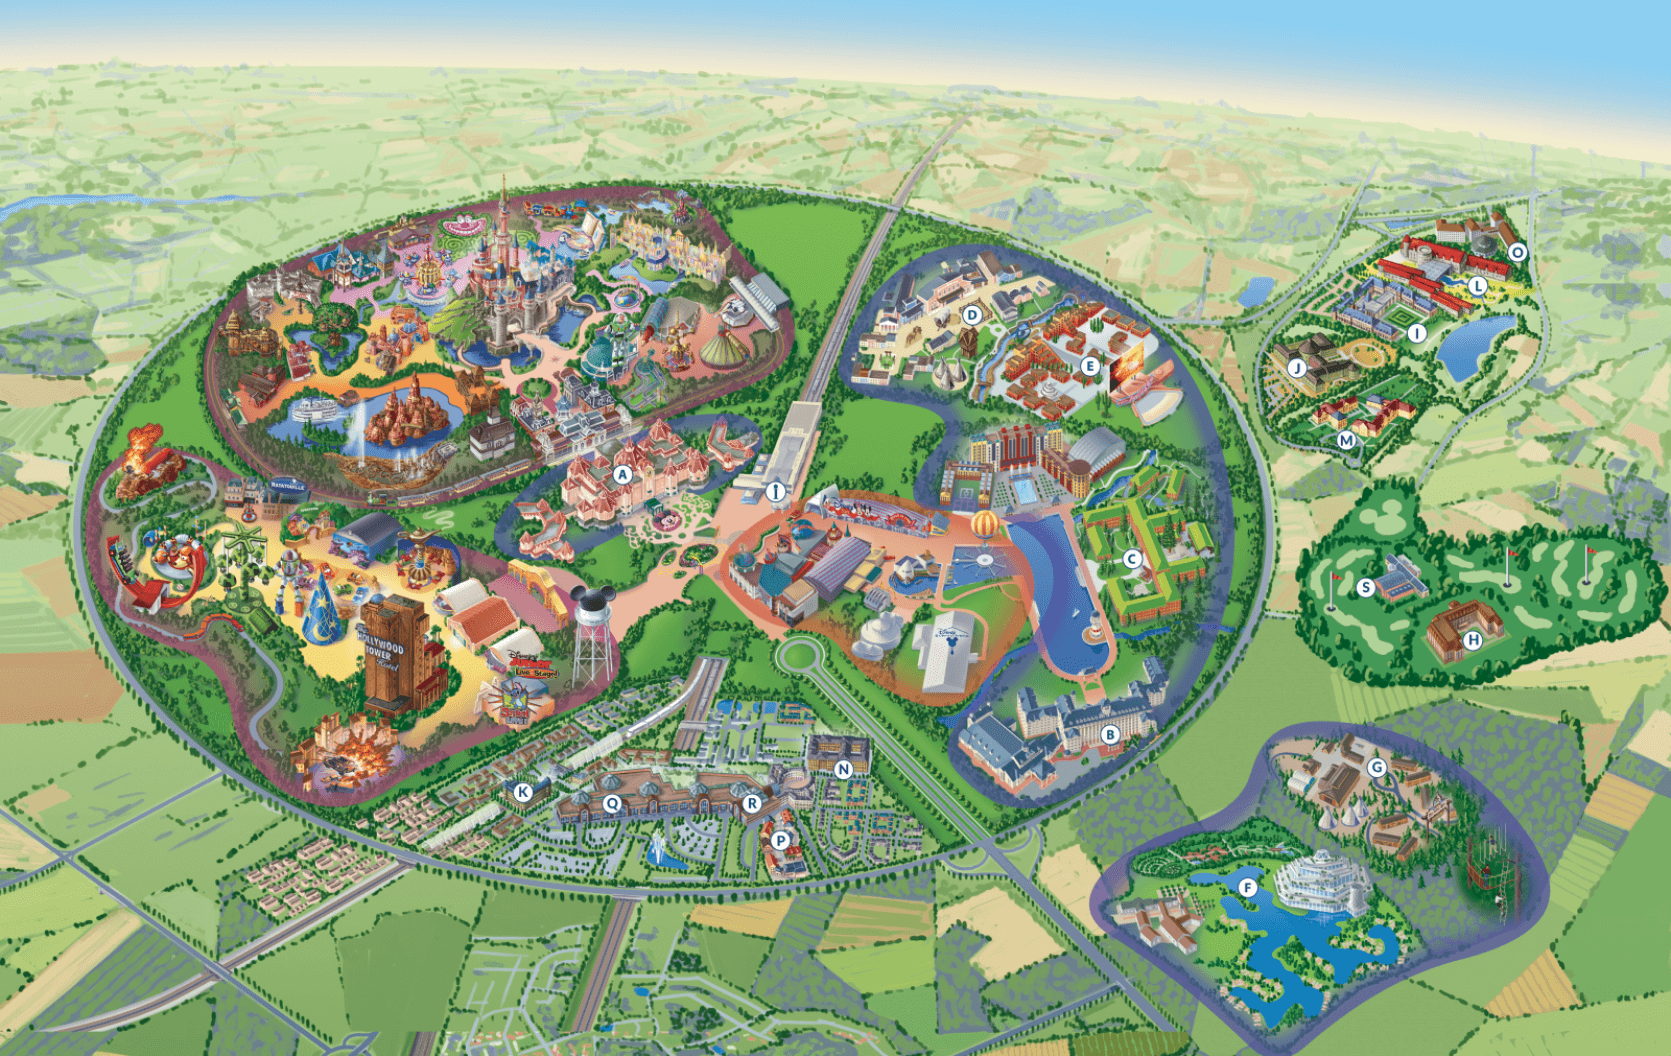 photograph relating to Printable Disneyland Maps named Disneyland Paris Map